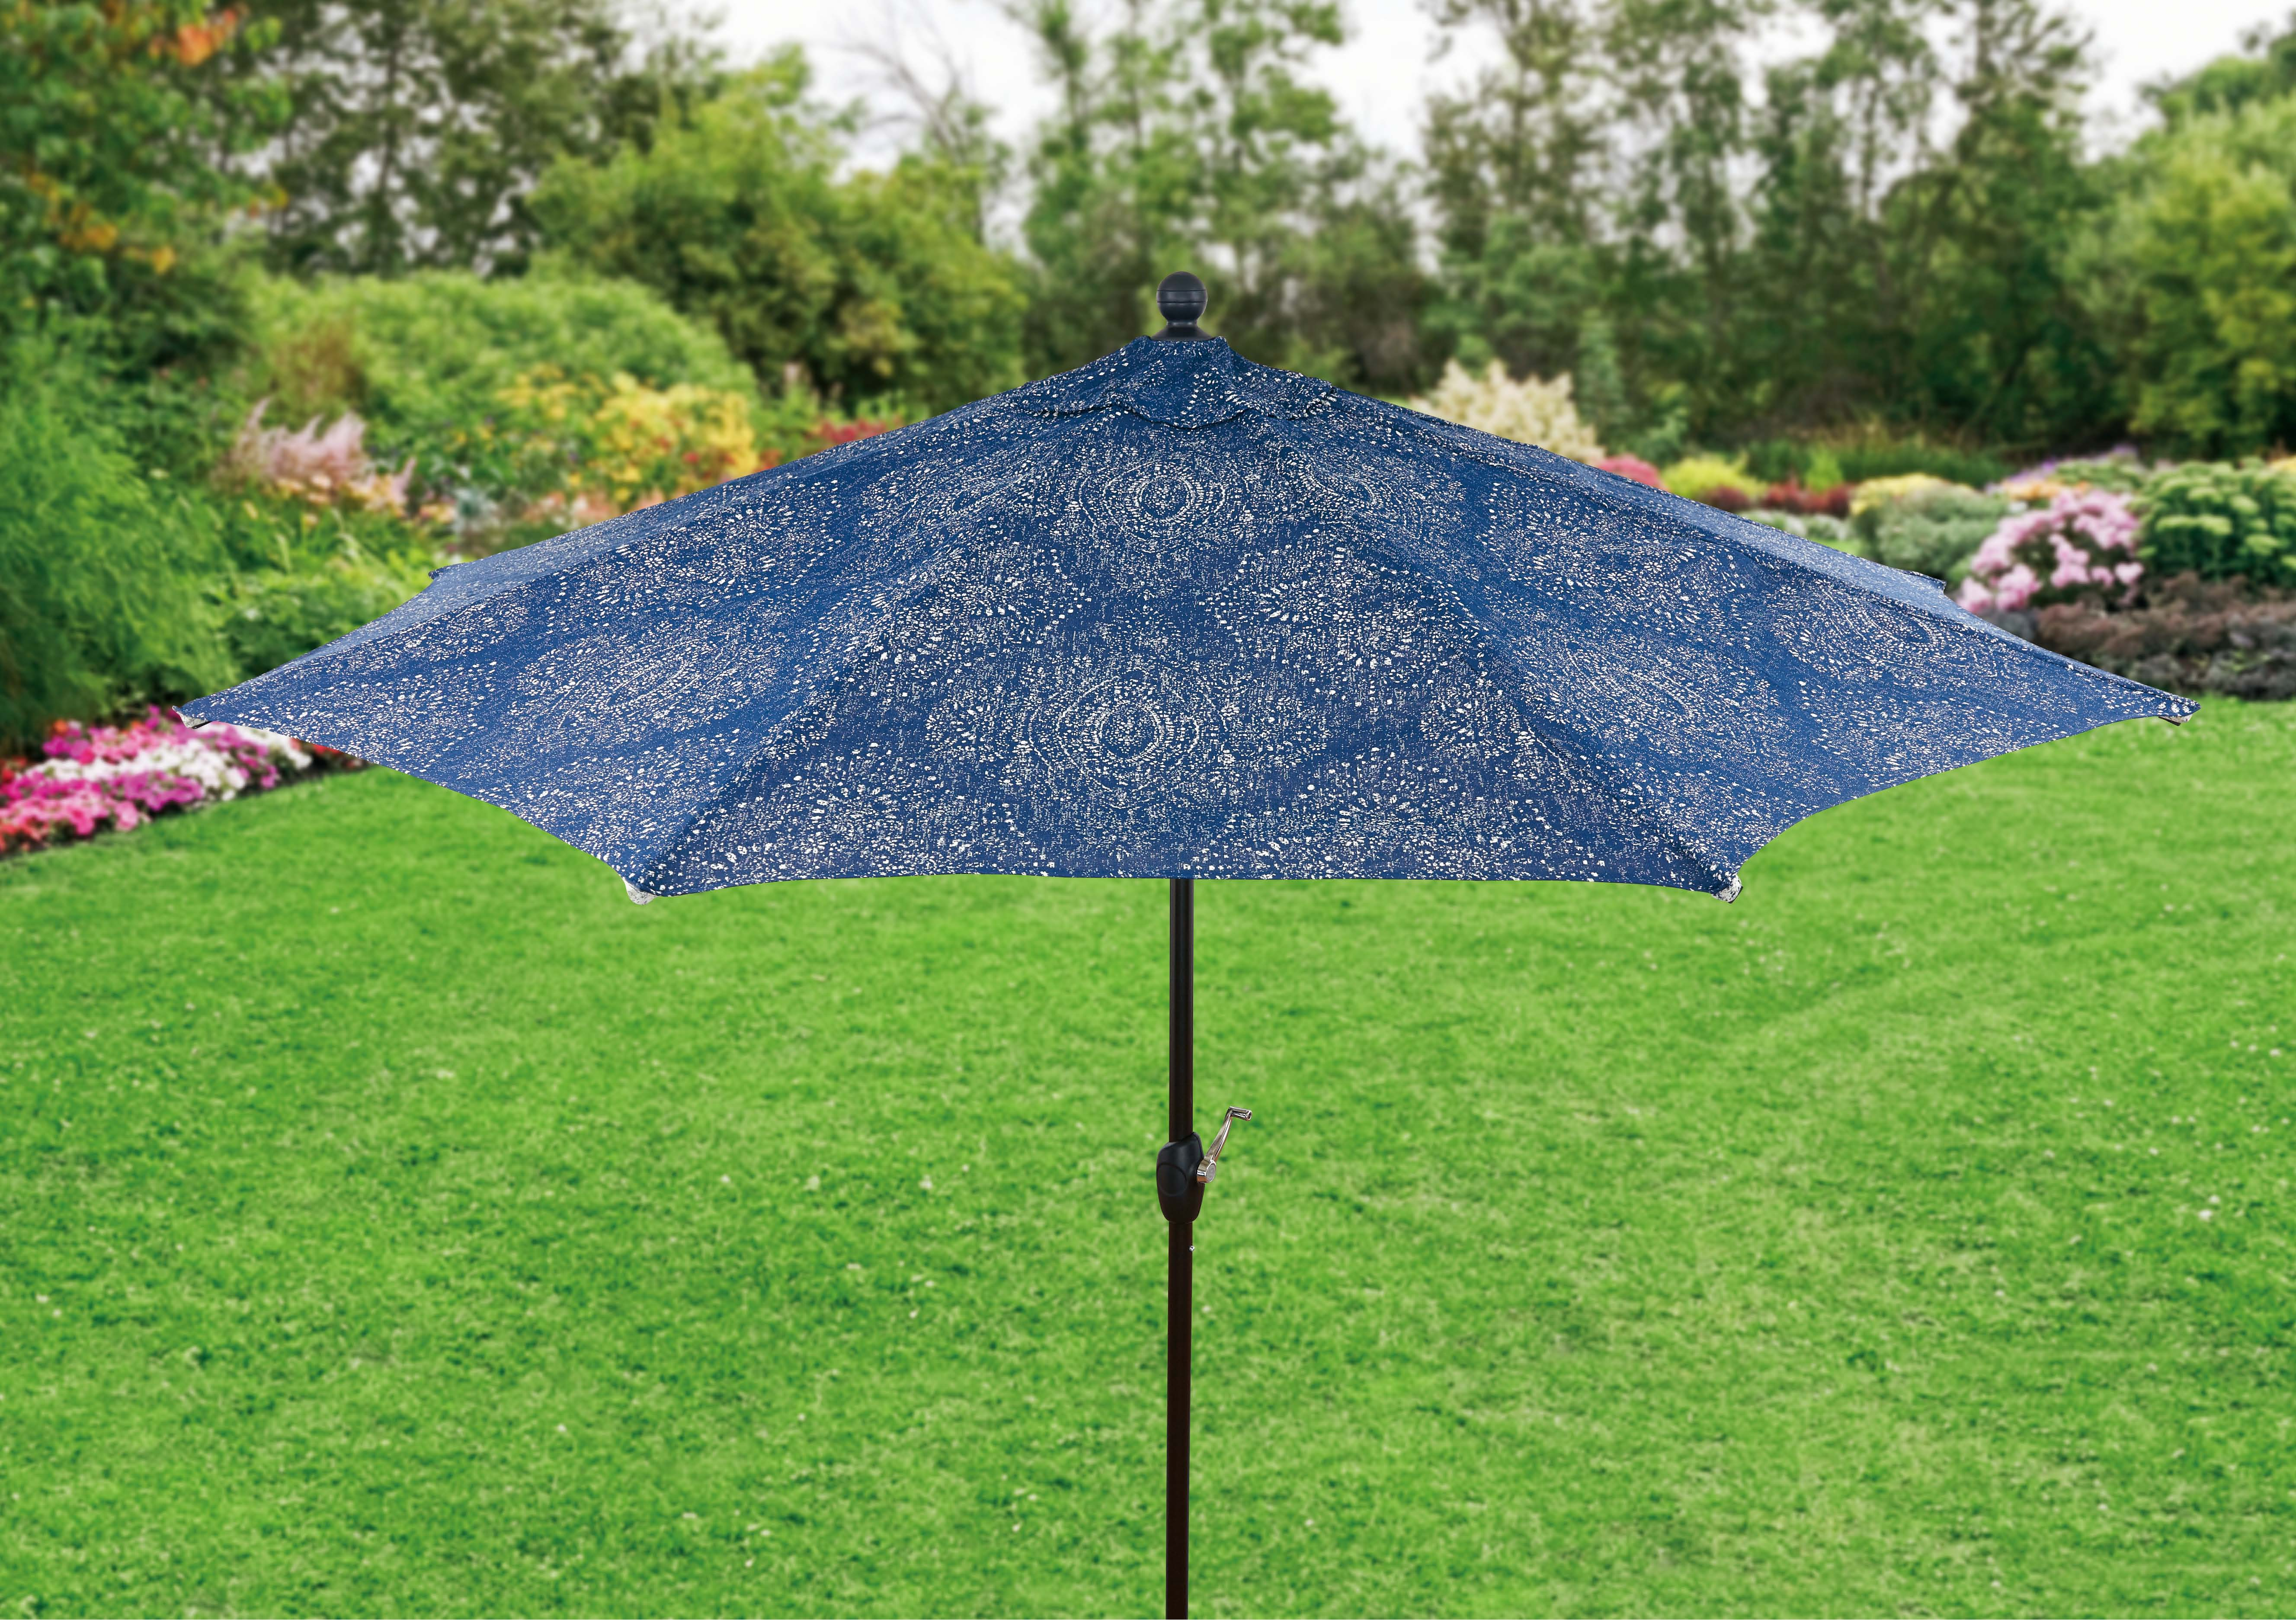 Better Homes and Gardens 9ft. Aluminum Market Umbrella by NINGBO EVERLUCK OUTDOOR PRODUCTS MANUFACTING CO LTD